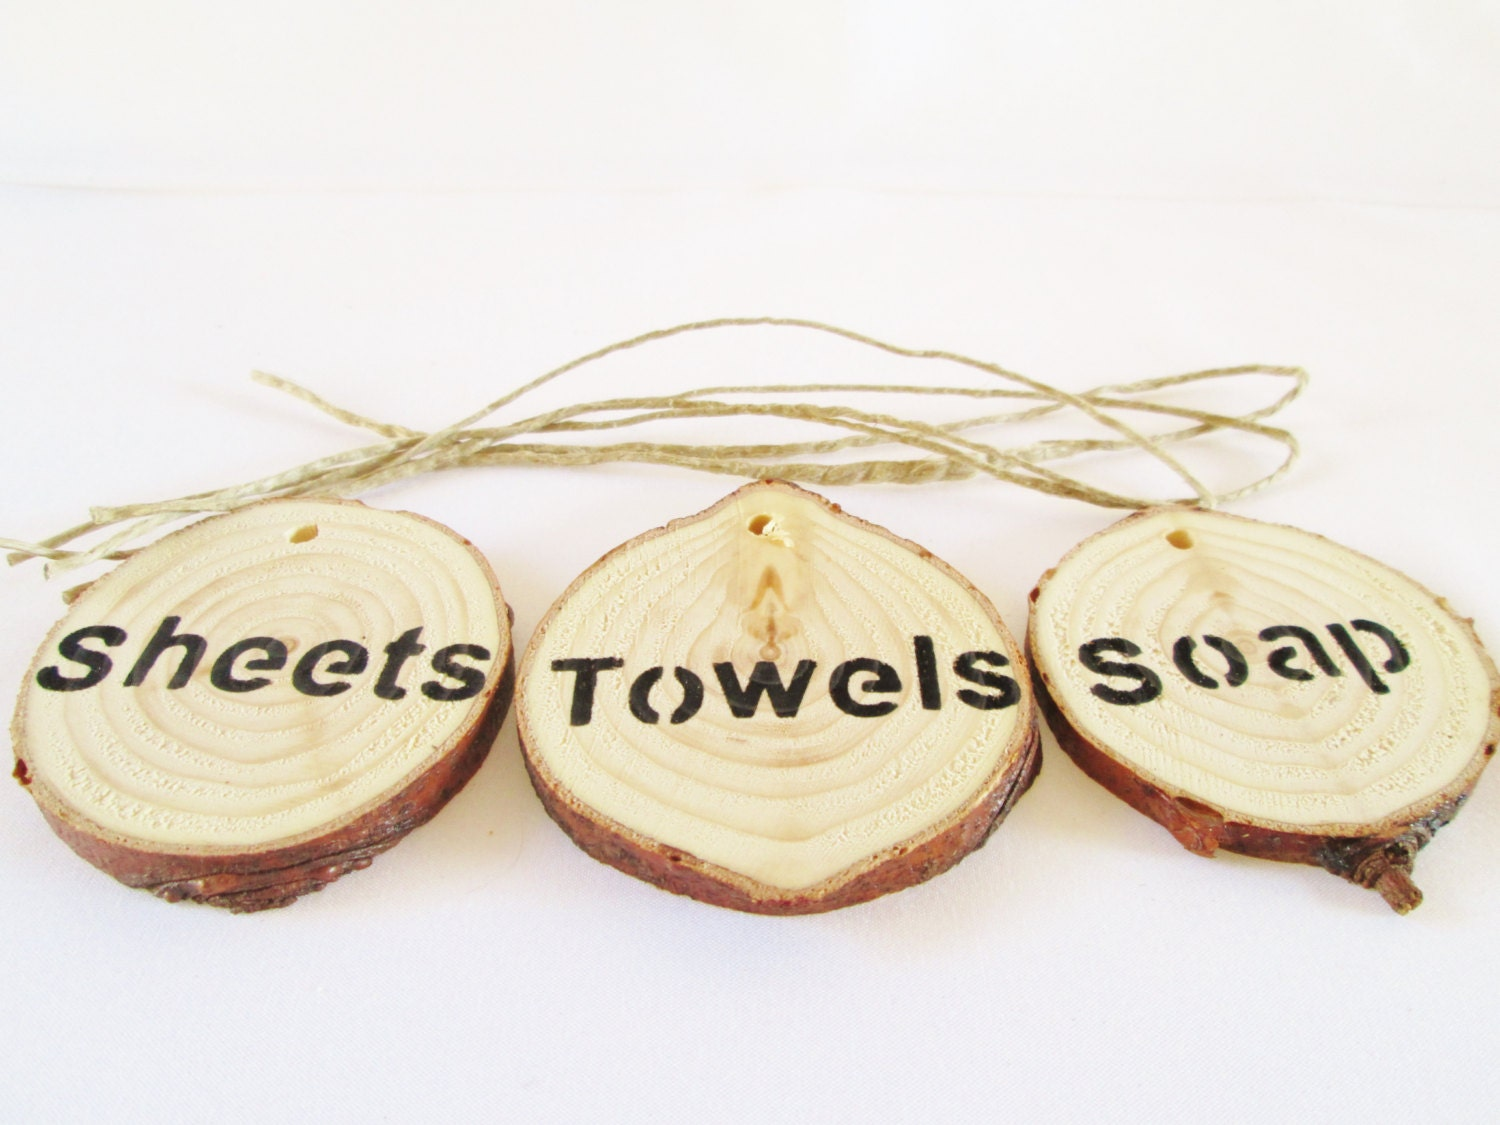 Popular items for organization labels on Etsy